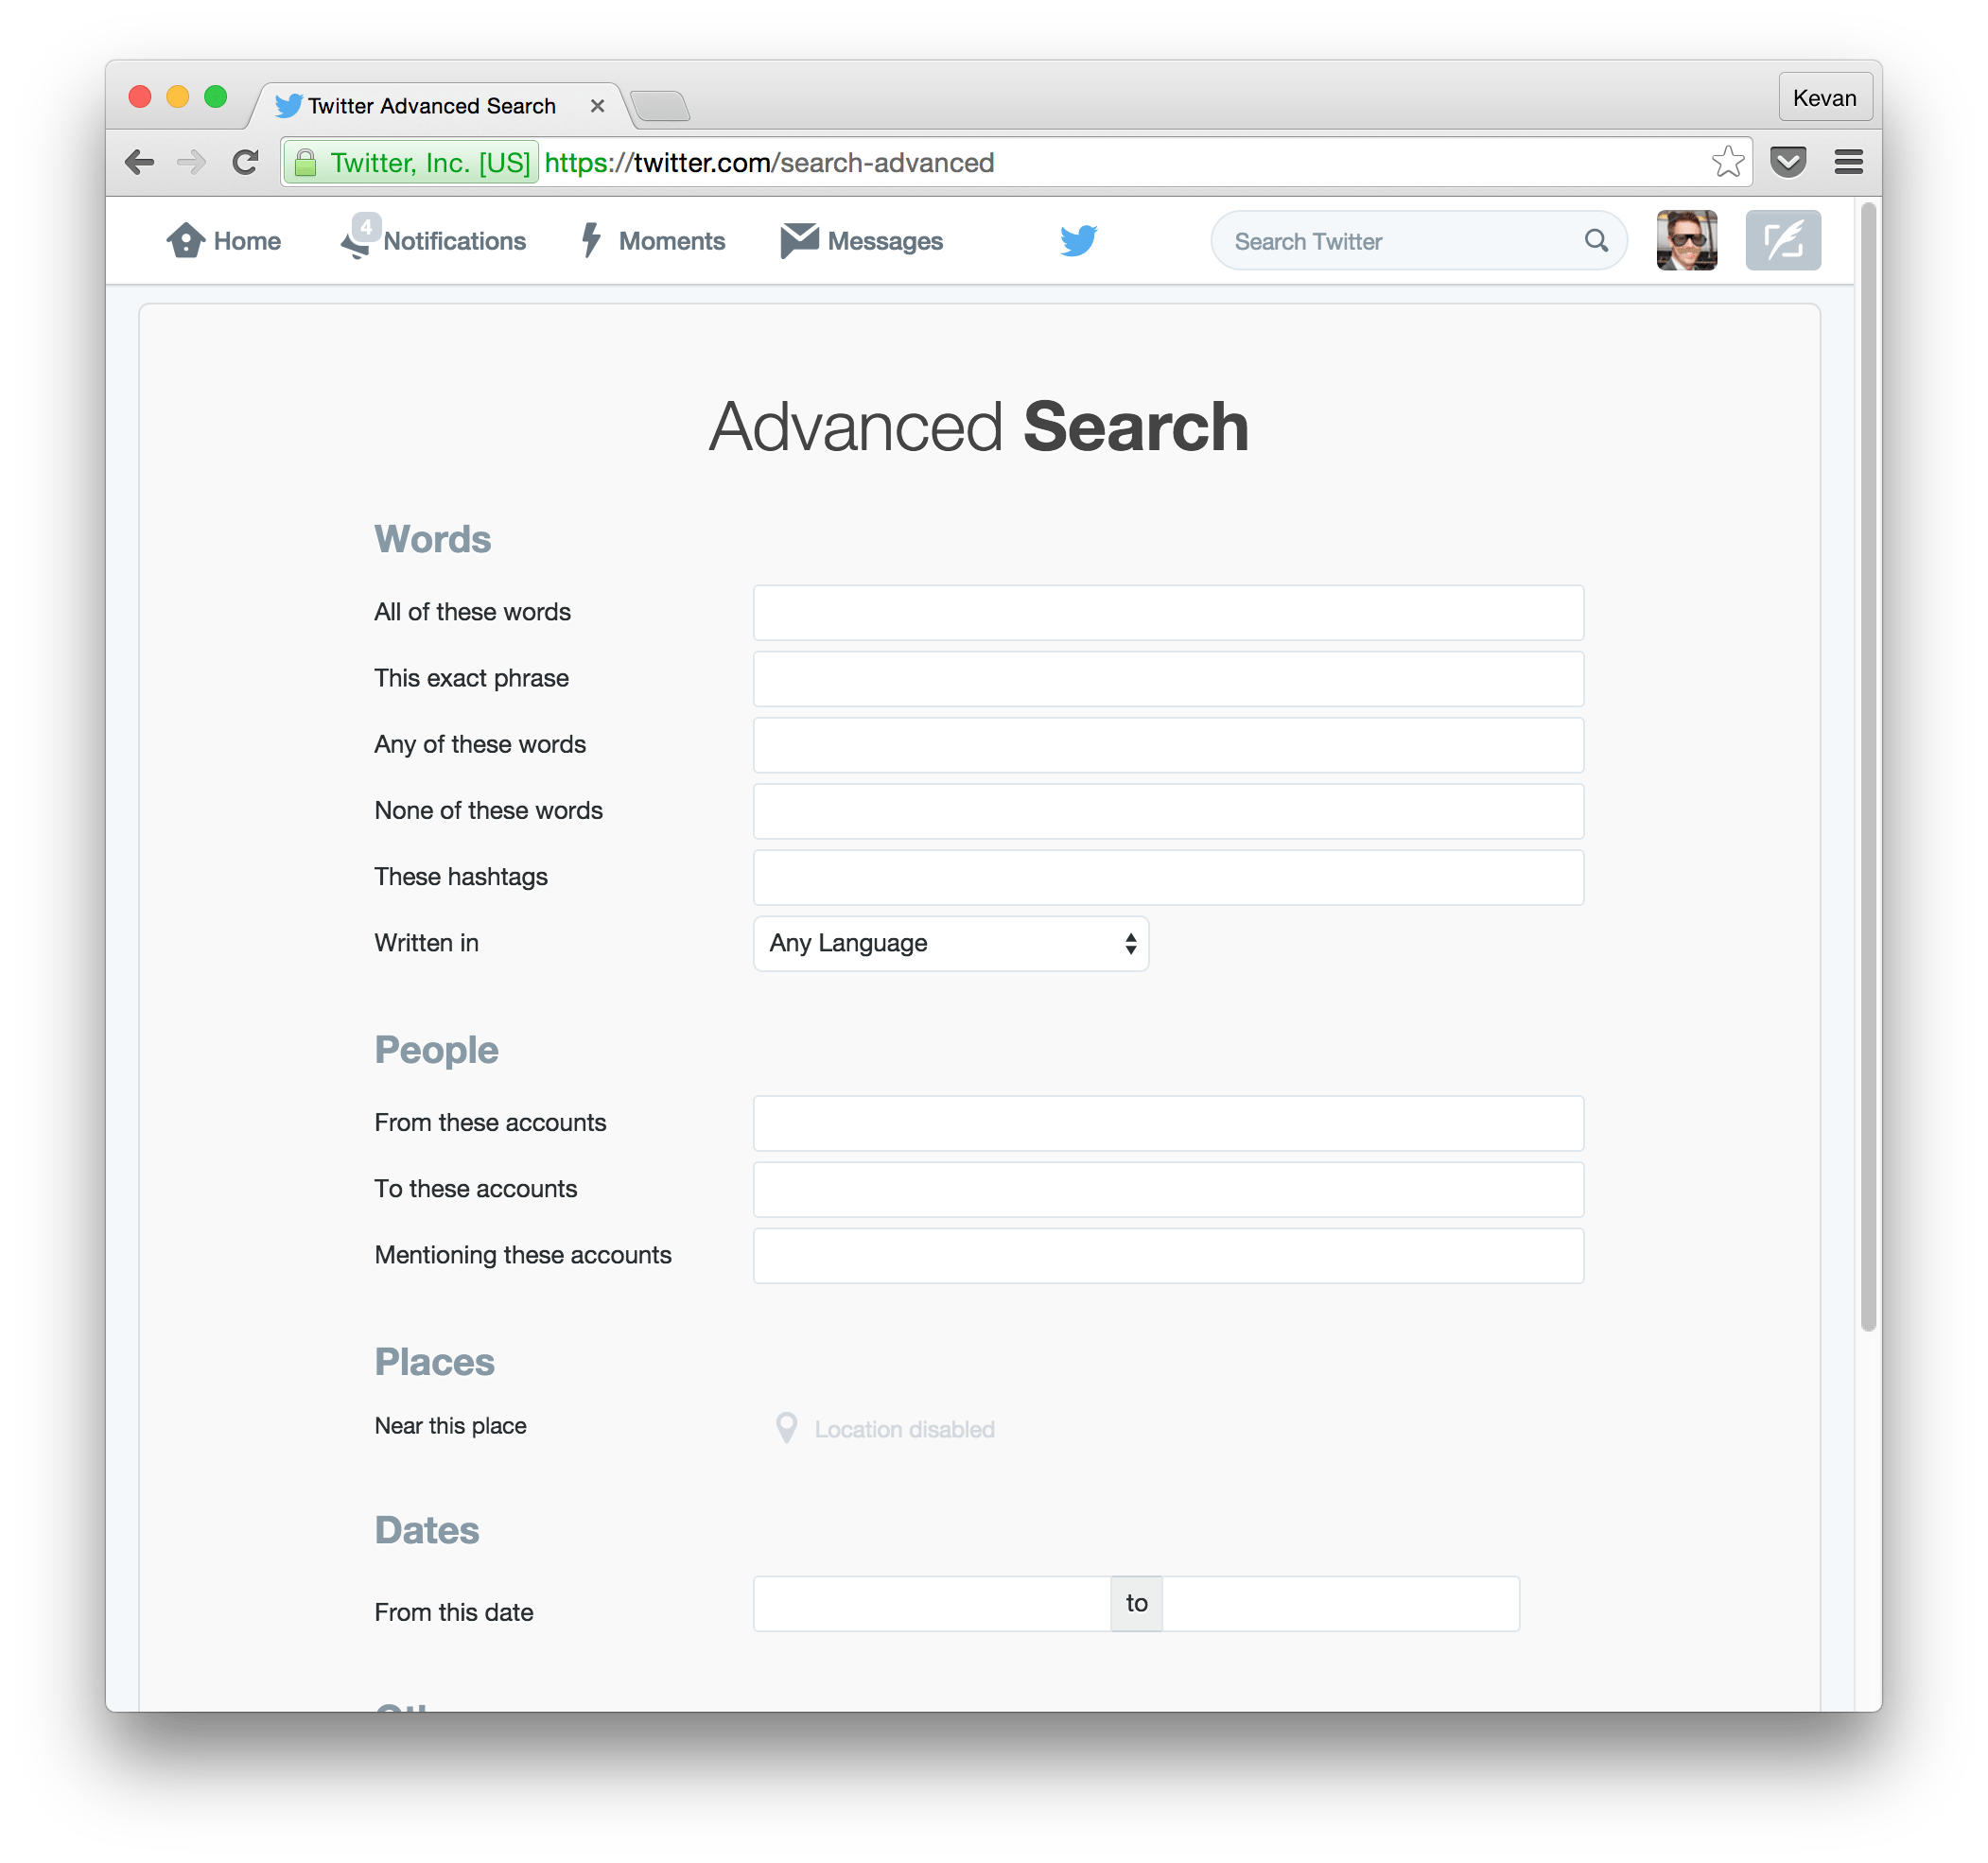 Twitter Advanced Search